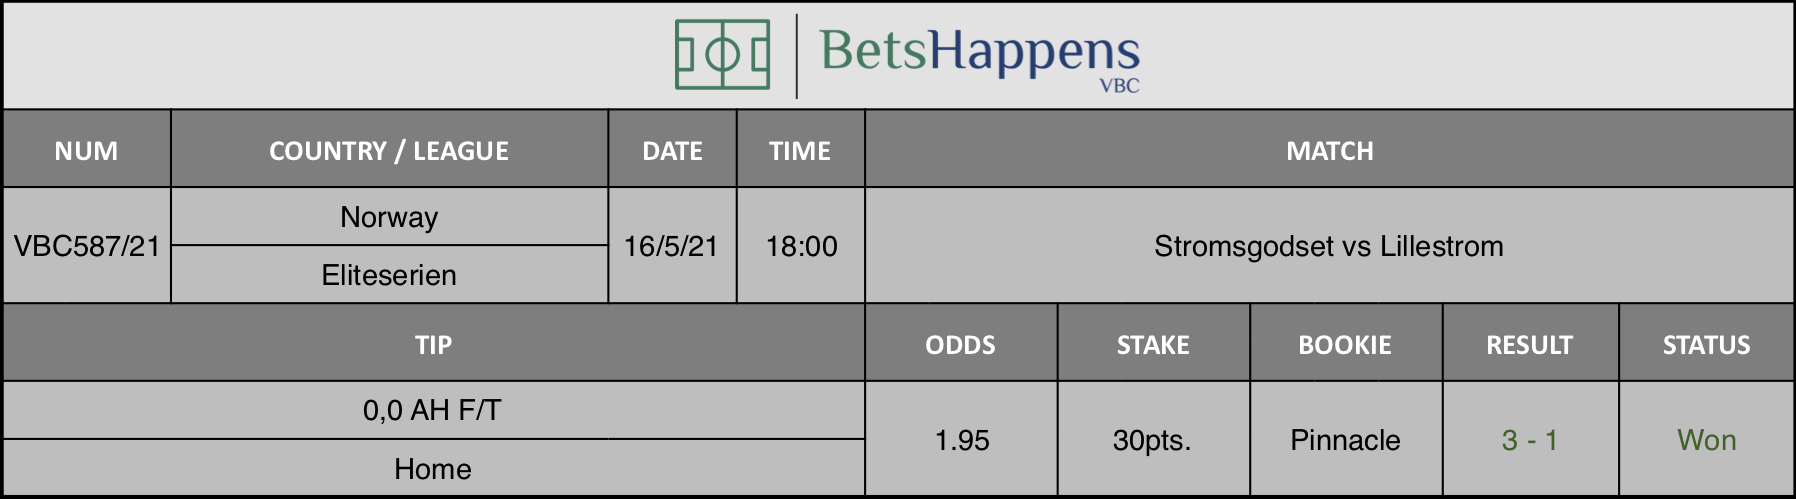 Results of our tip for the Stromsgodset vs Lillestrom match where 0,0 AH F/T  Home is recommended.